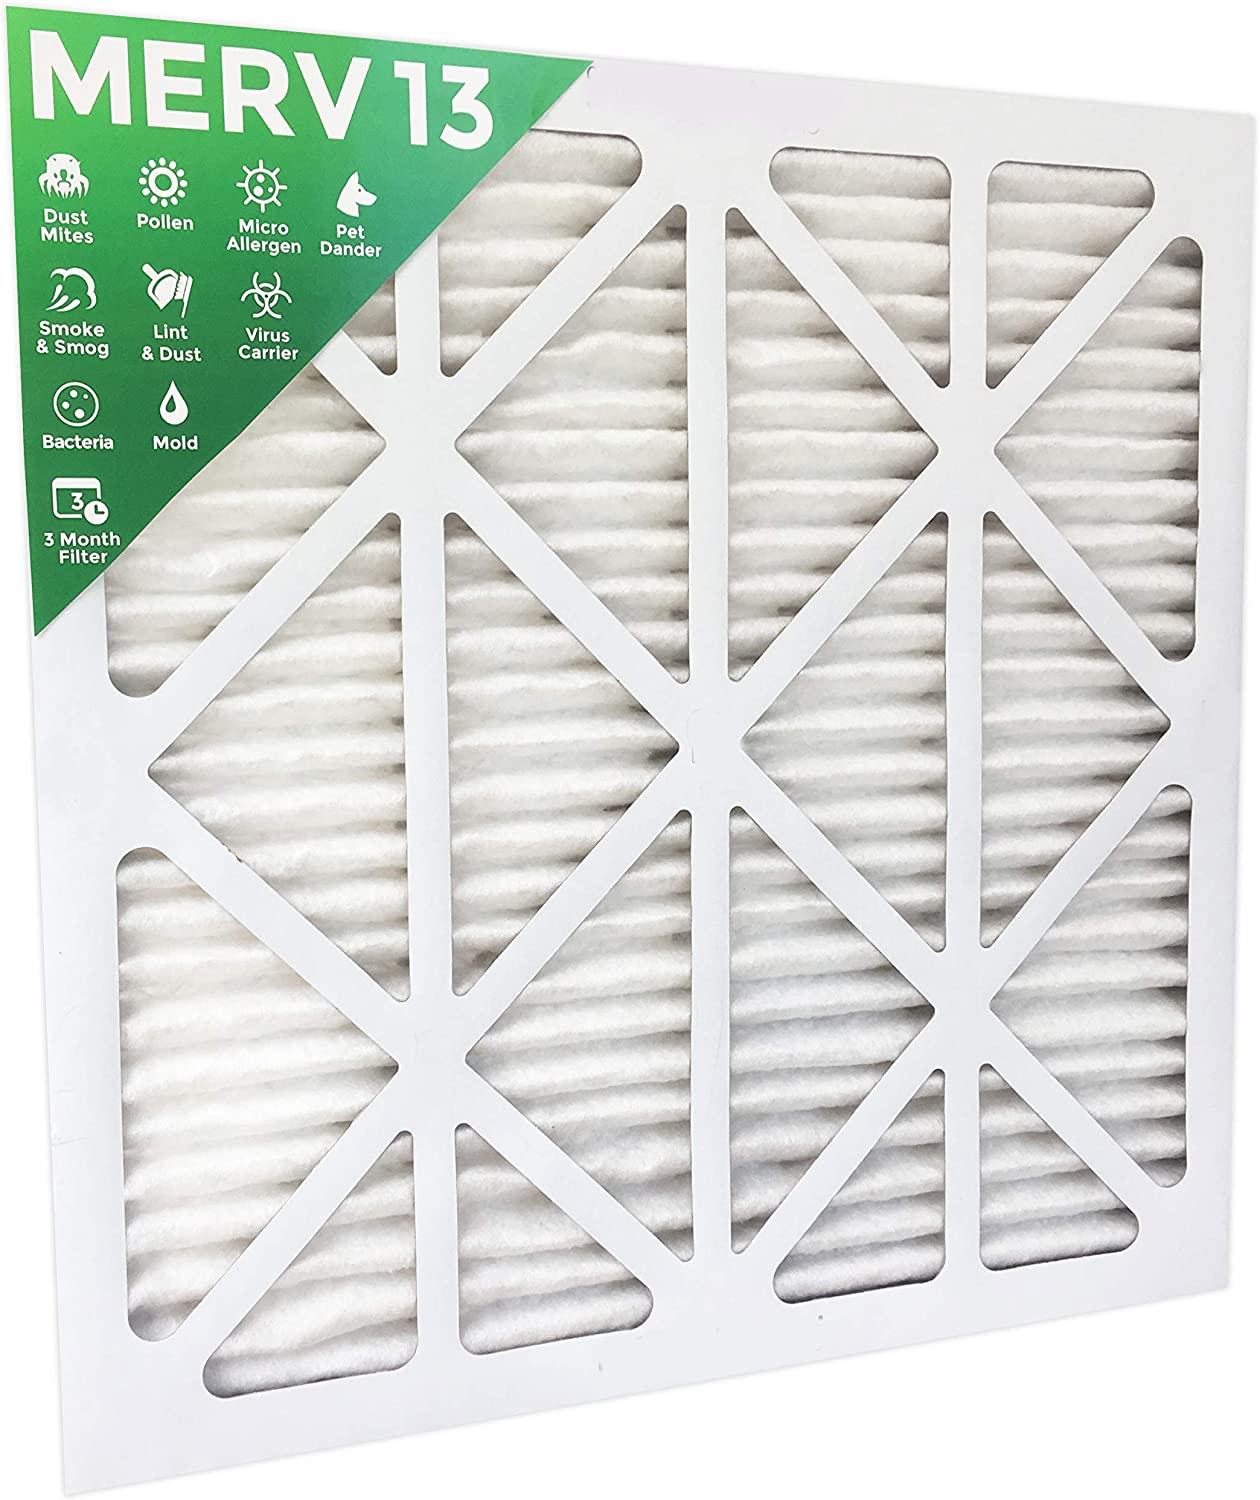 4 Pack MPR 2200 Pleated AC Furnace Air Filters 18x18x1 MERV 13